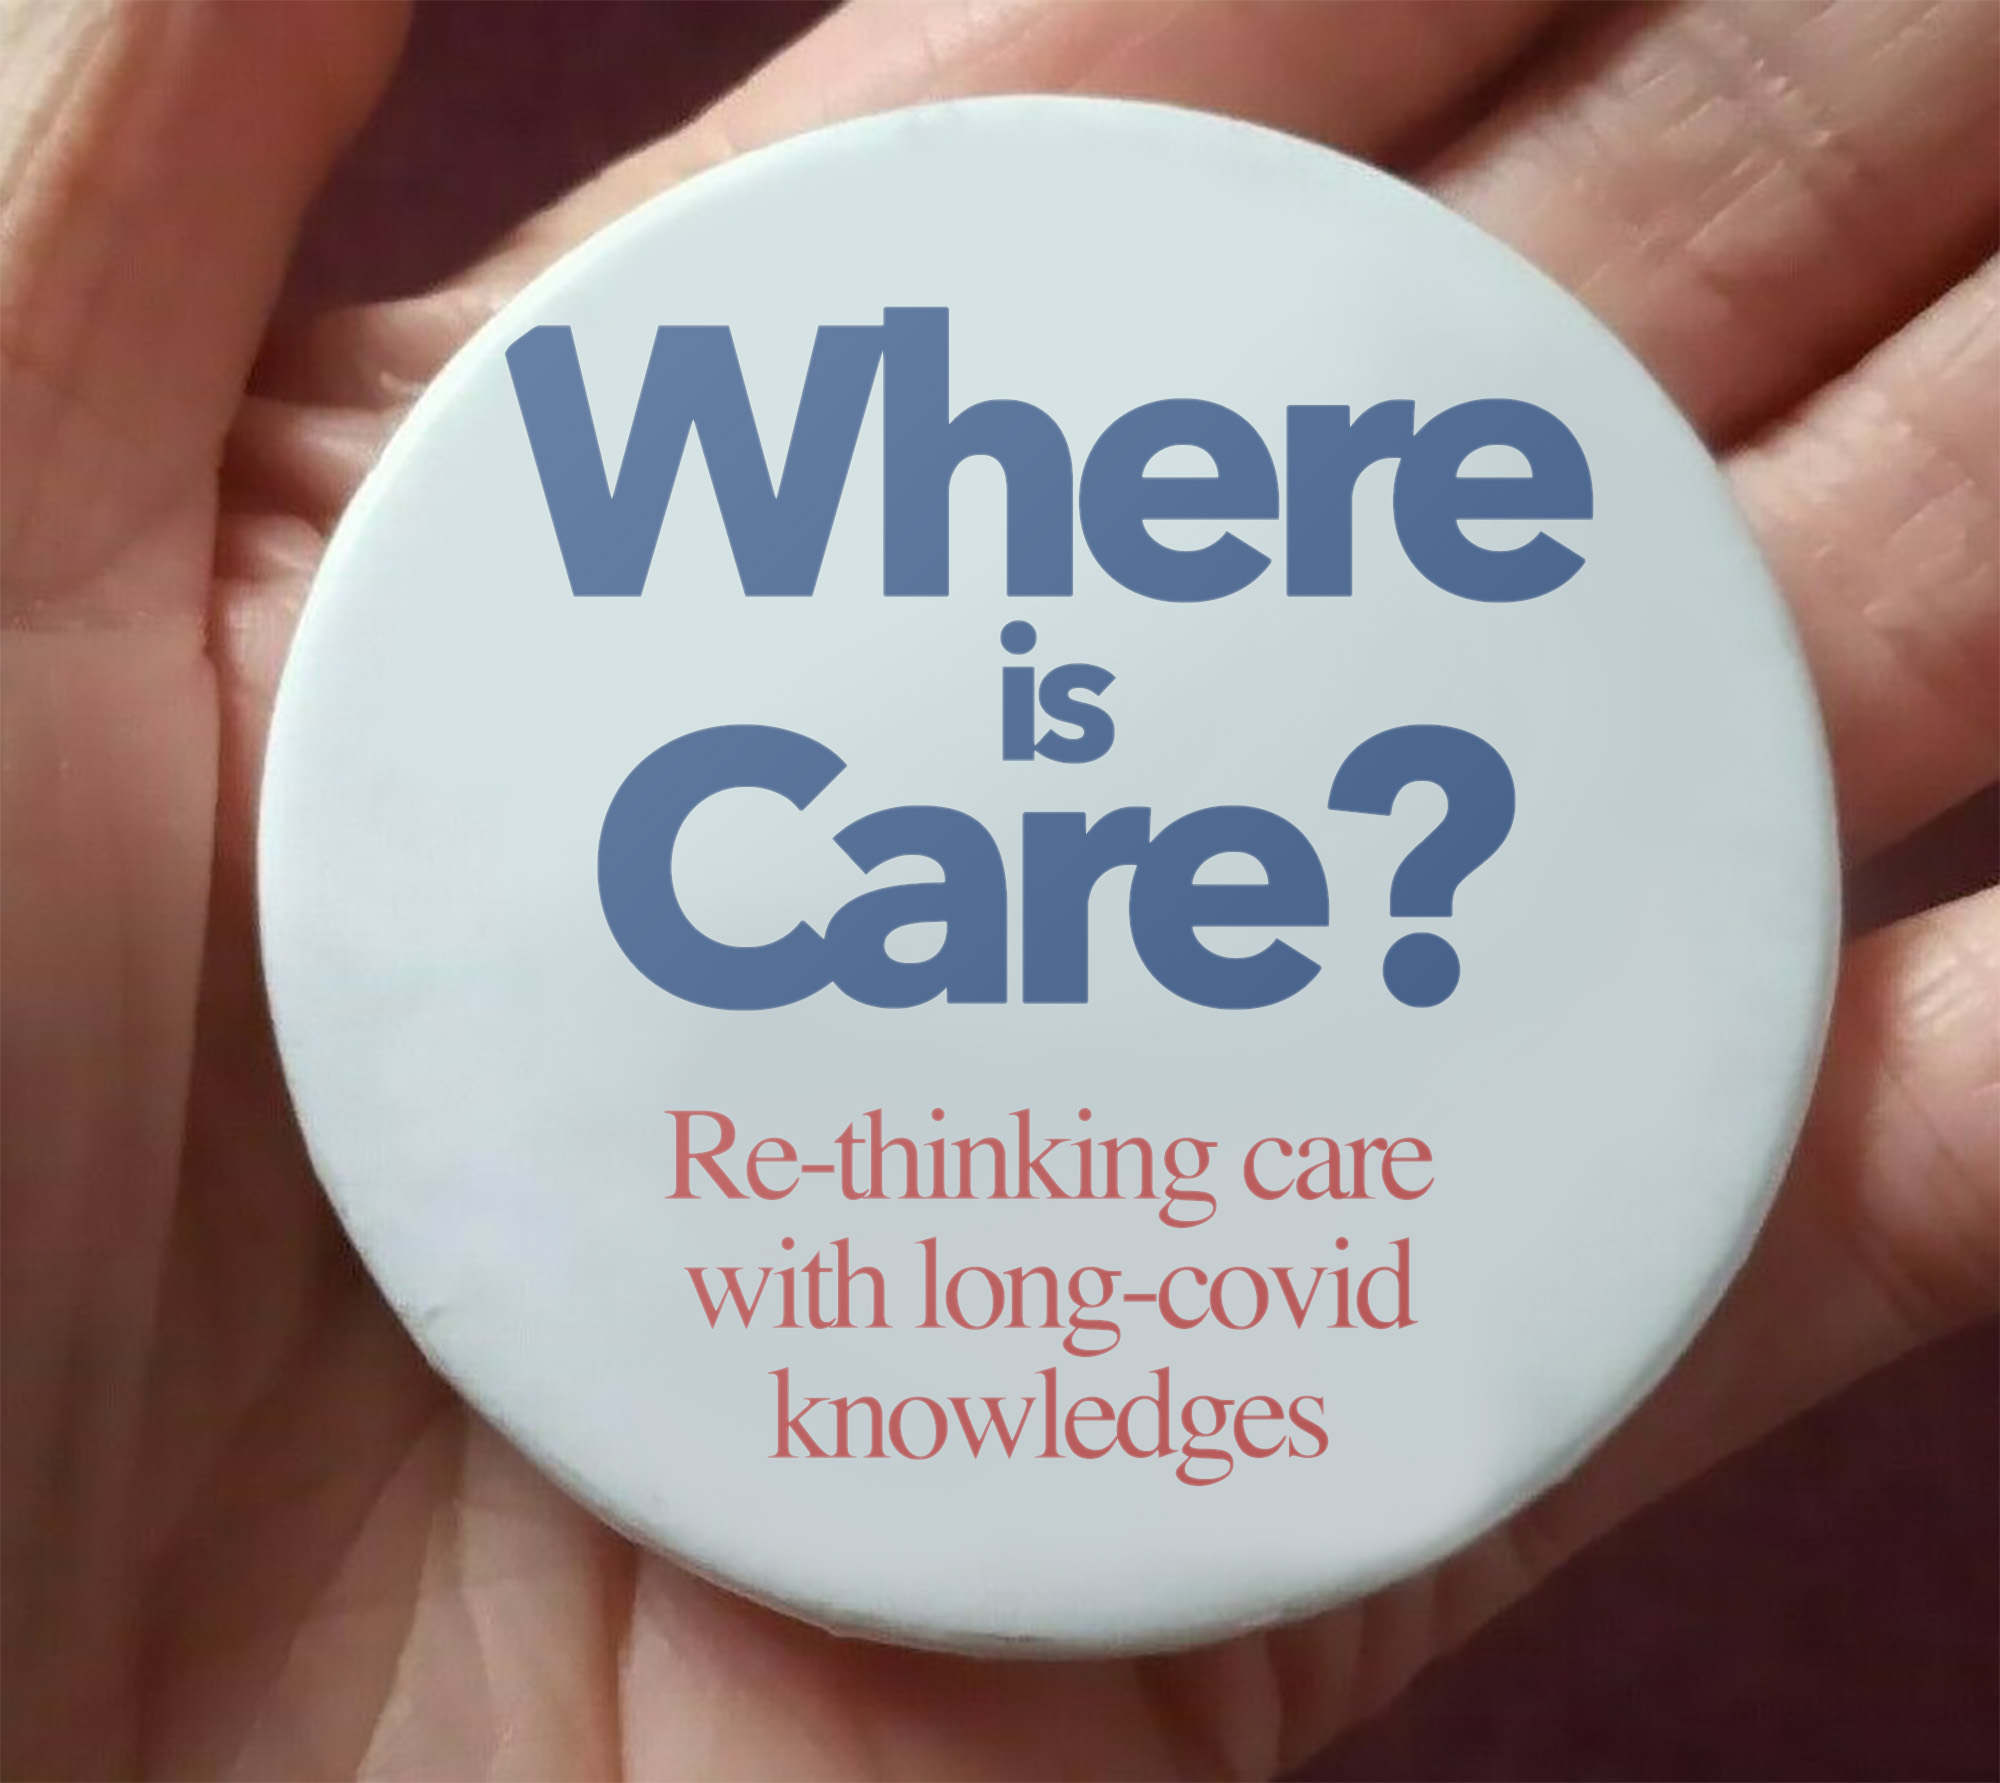 A badge on a hand that states 'Where is care? Re-thinking care with long-covid knowledges